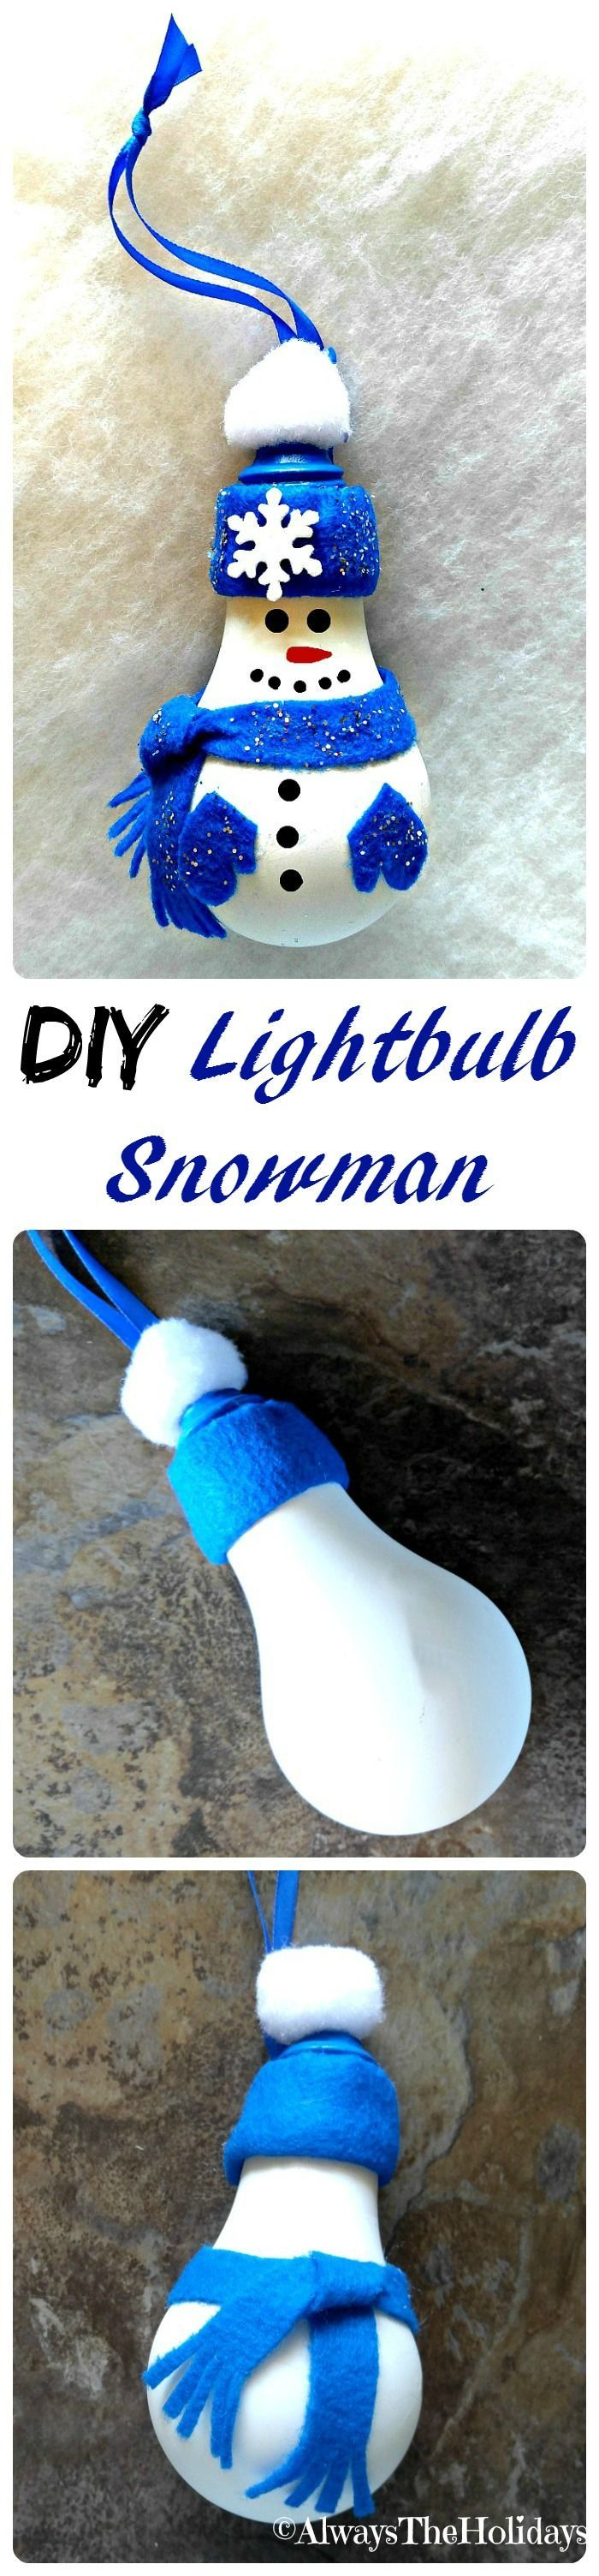 This DIY Light Bulb Snowman is easy to make and will look adorable on your Christmas tree.